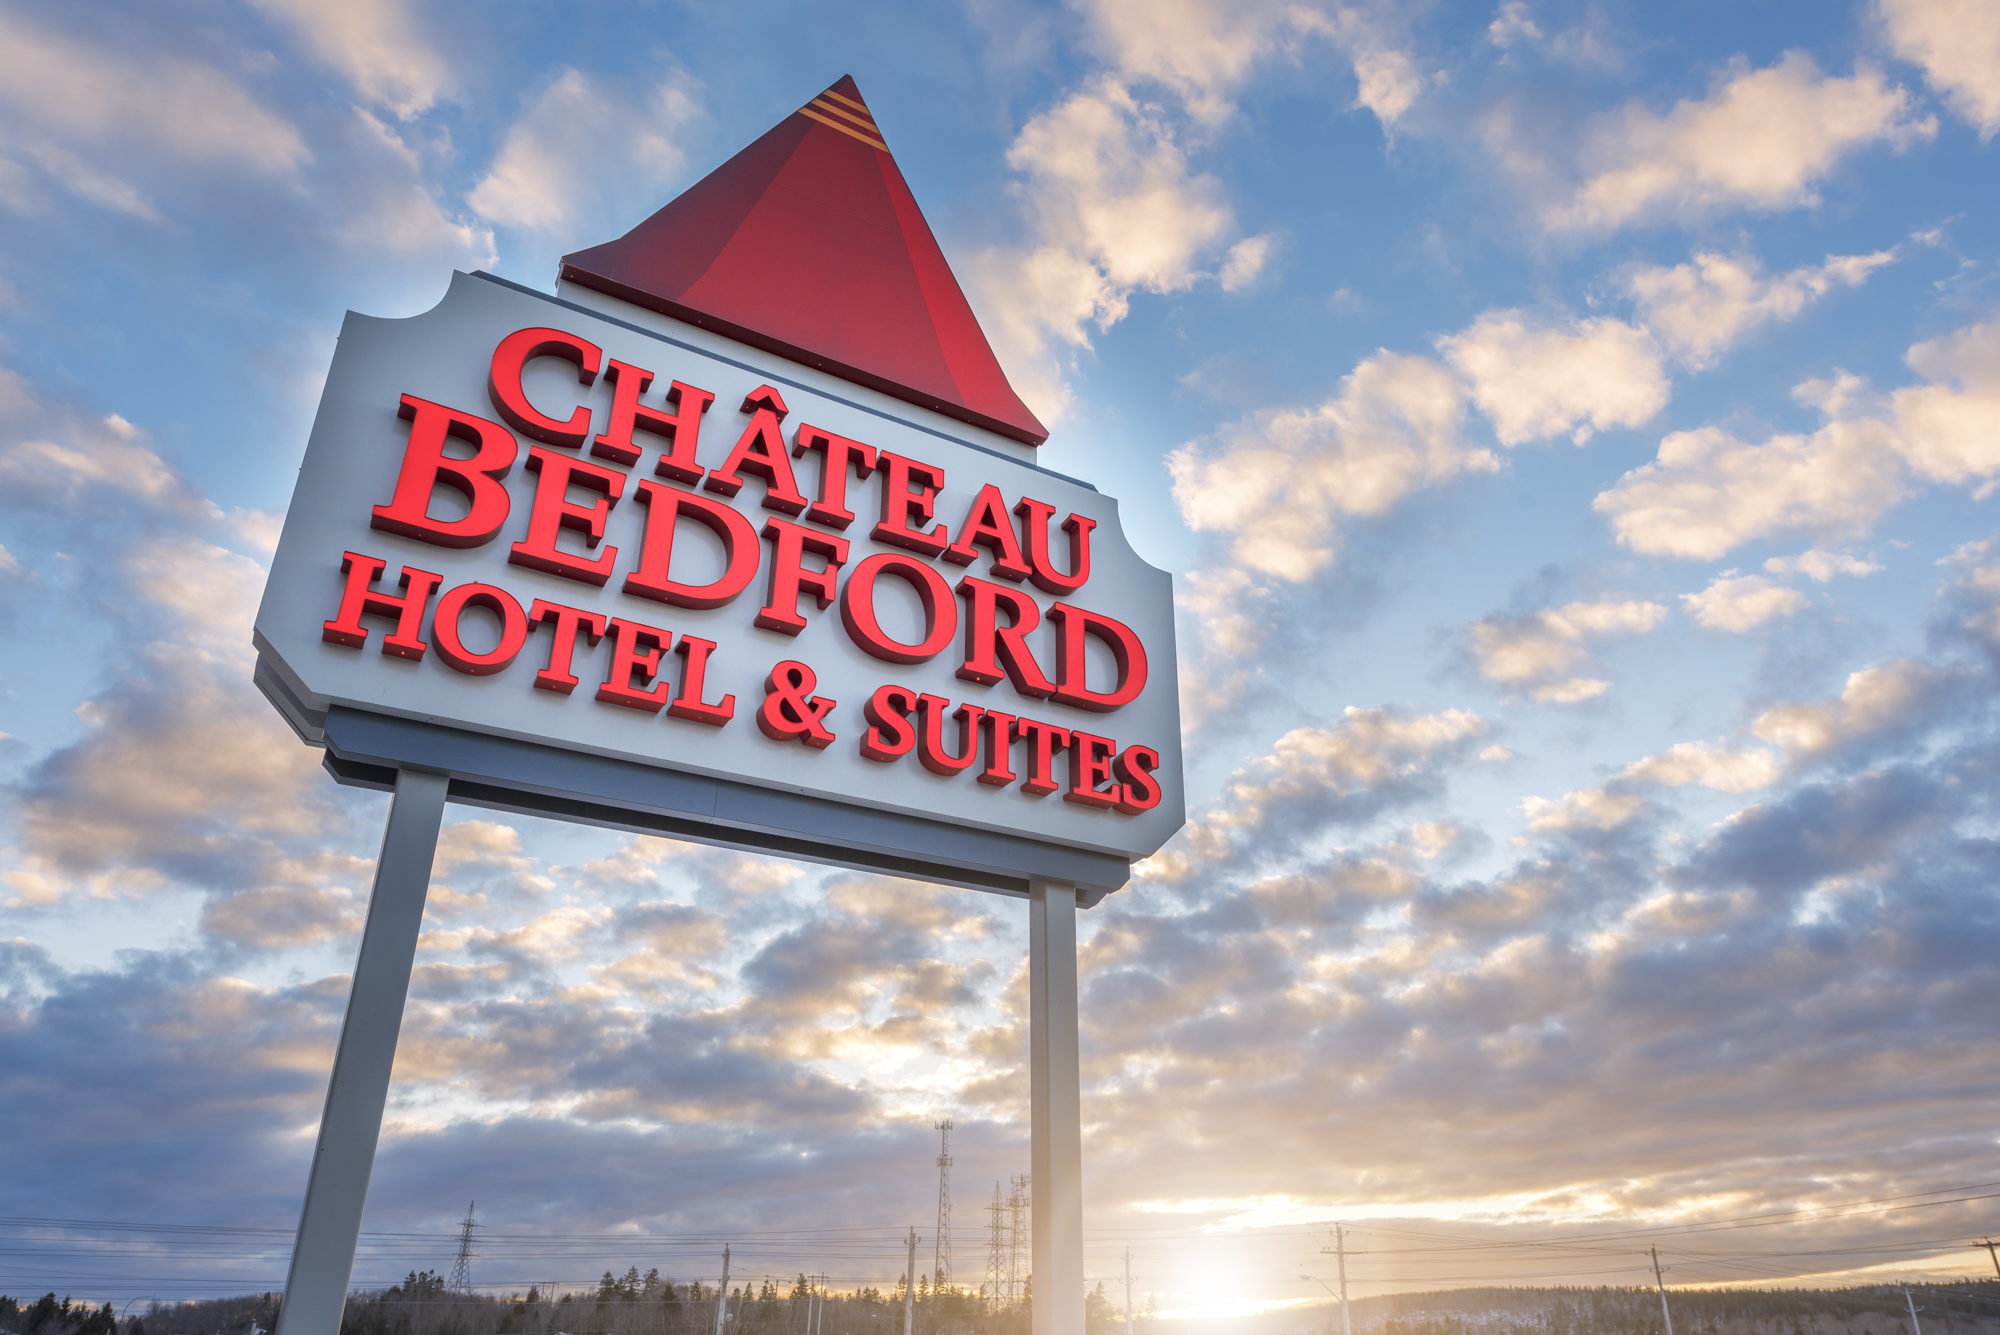 Chateau bedford sign.jpg